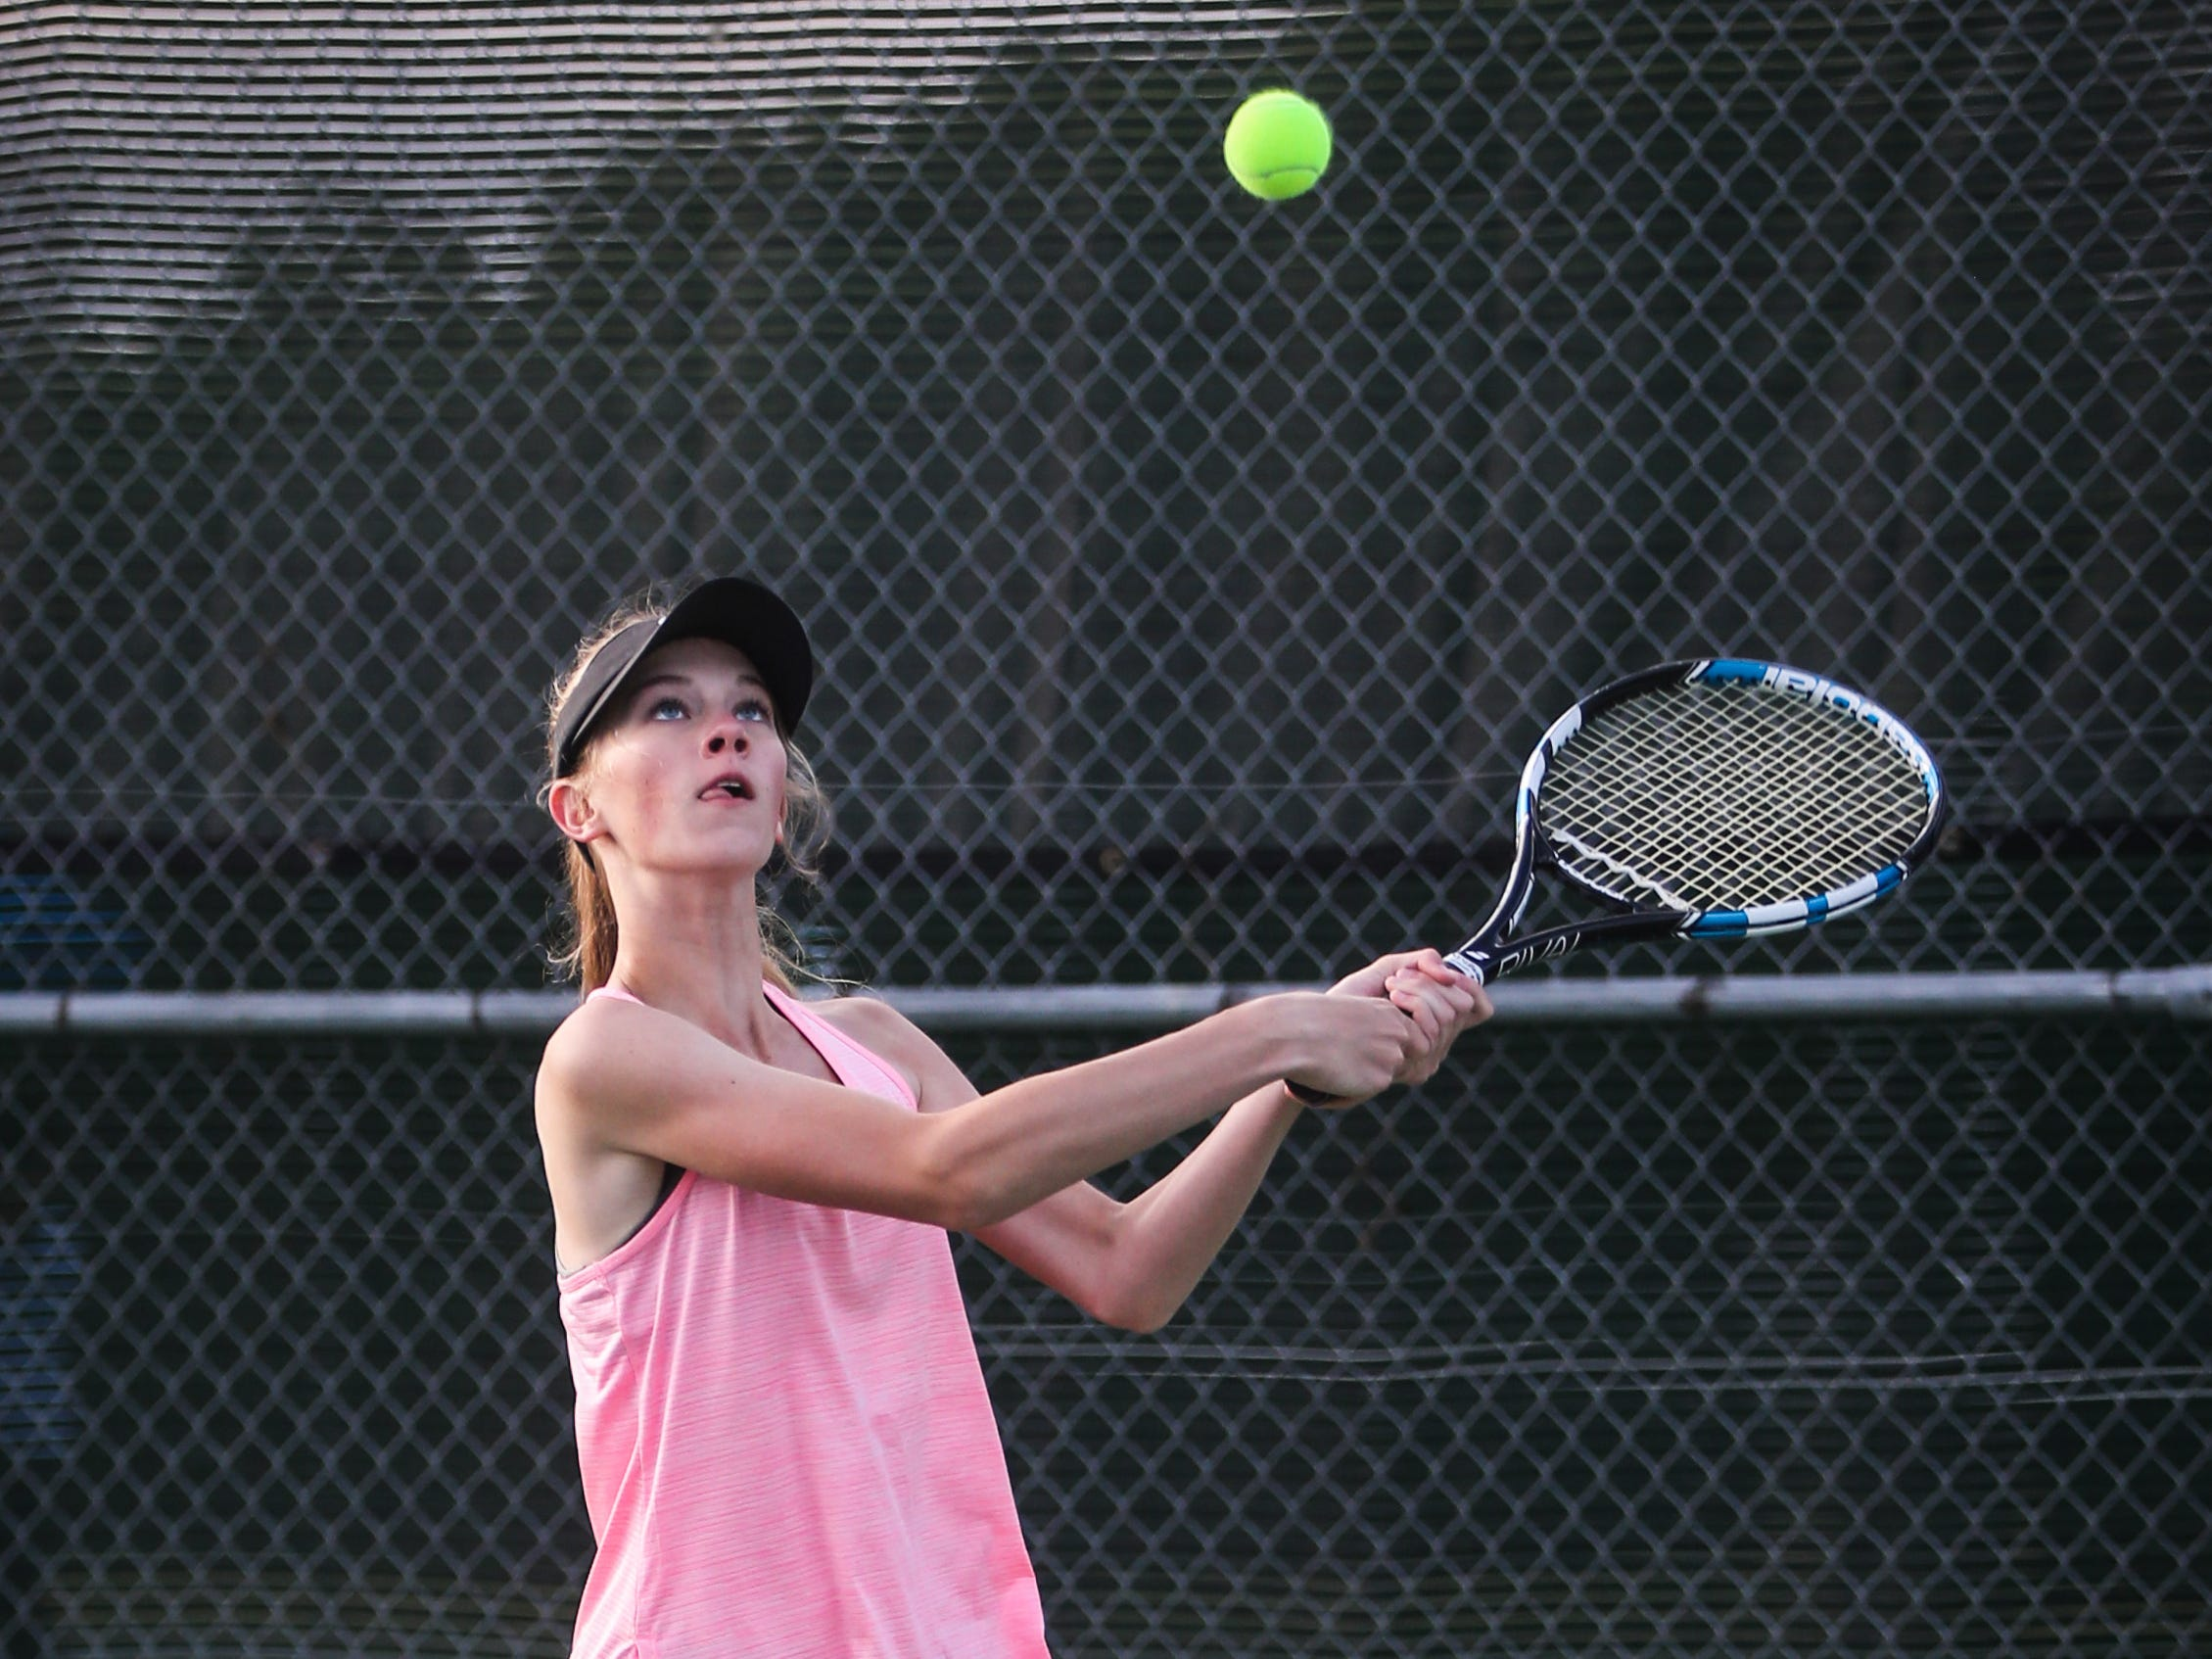 Crowell's Seanna Trainham goes for the ball during the doubles game at the region II -1A tennis championship Thursday, April 18, 2019, at Bentwood Country Club.